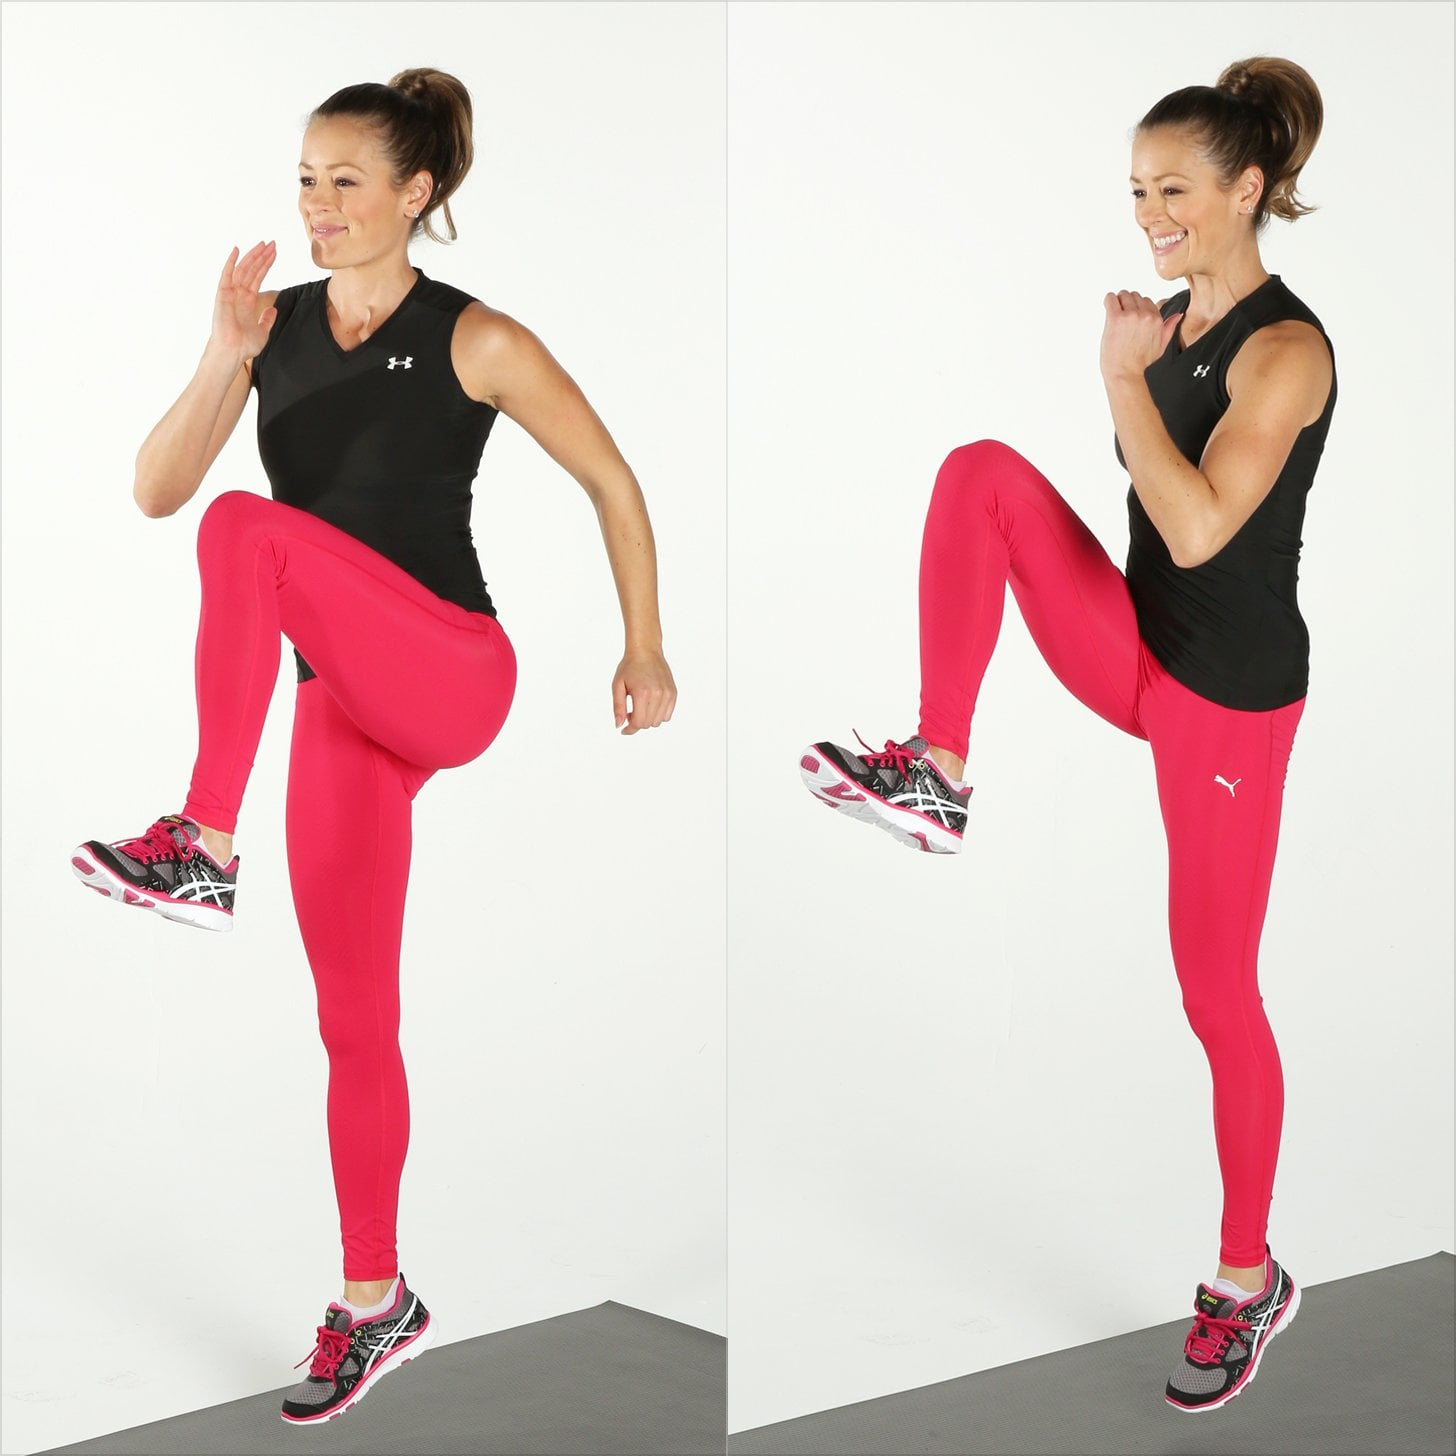 Burn Calories, Up Your Heart Rate, and Tone Your Legs With 1 Move